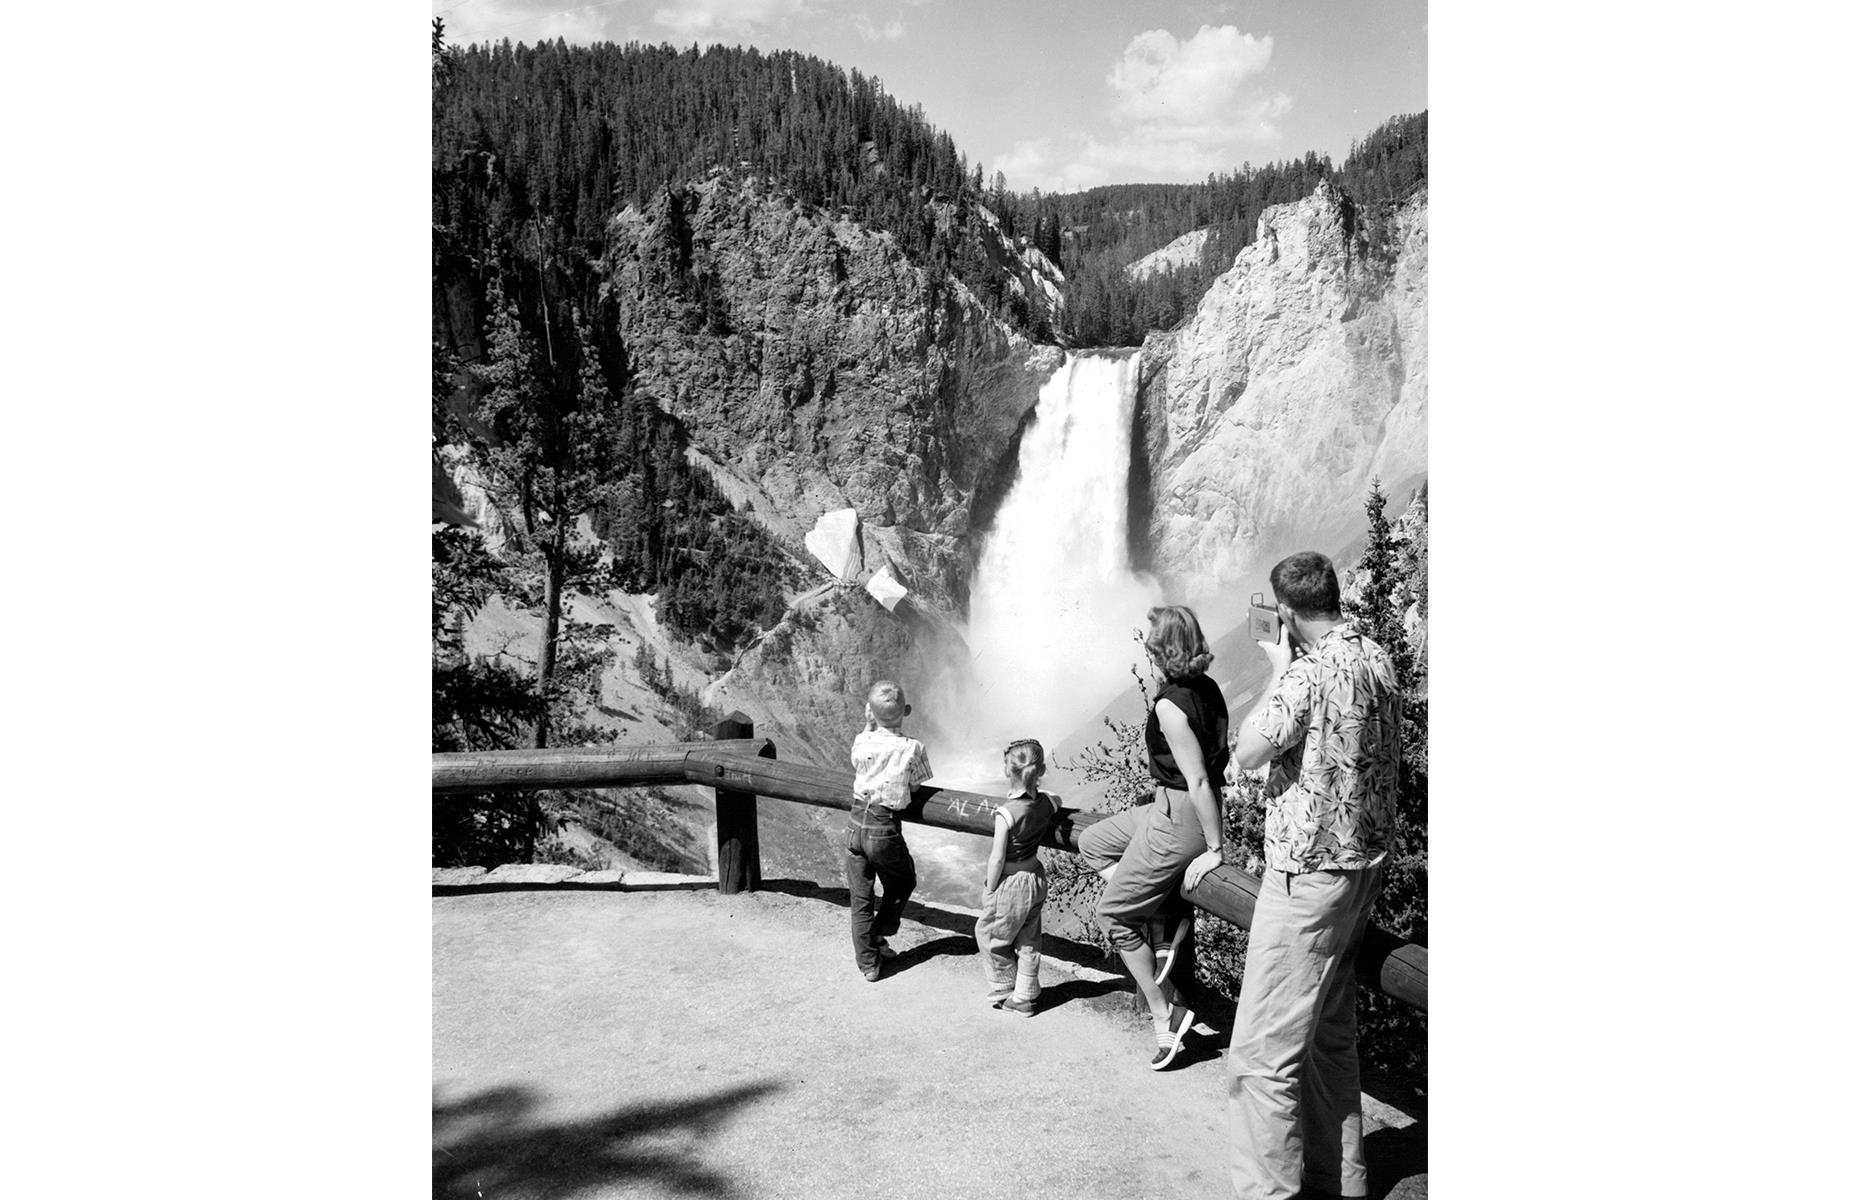 Slide 6 of 47: This national park is one of the largest in the USA too, leaving plenty of room for its revered natural wonders. Among them is Tower Falls, a 132-foot (40m) cascade in the northeast of Yellowstone, which you can take in from a scenic overlook. In this nostalgic shot, a young family admire the spectacle in 1955.